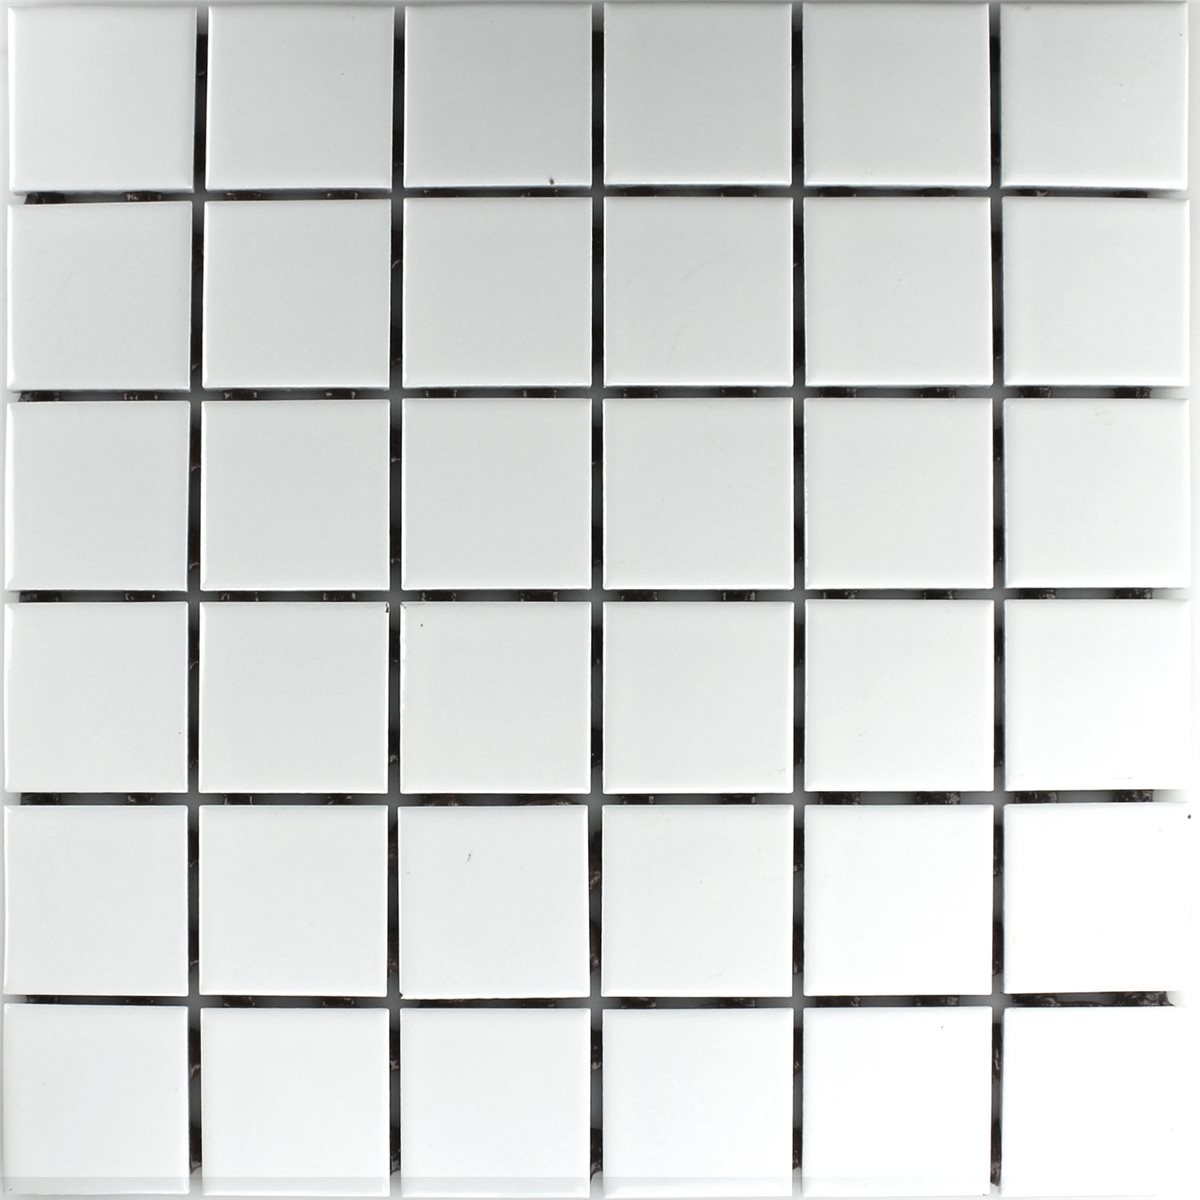 Mosaic Tiles Ceramic White Mat 48x48x6mm. Ceramic Mosaic Tiles White Matt 48x48x6mm   HO24163m